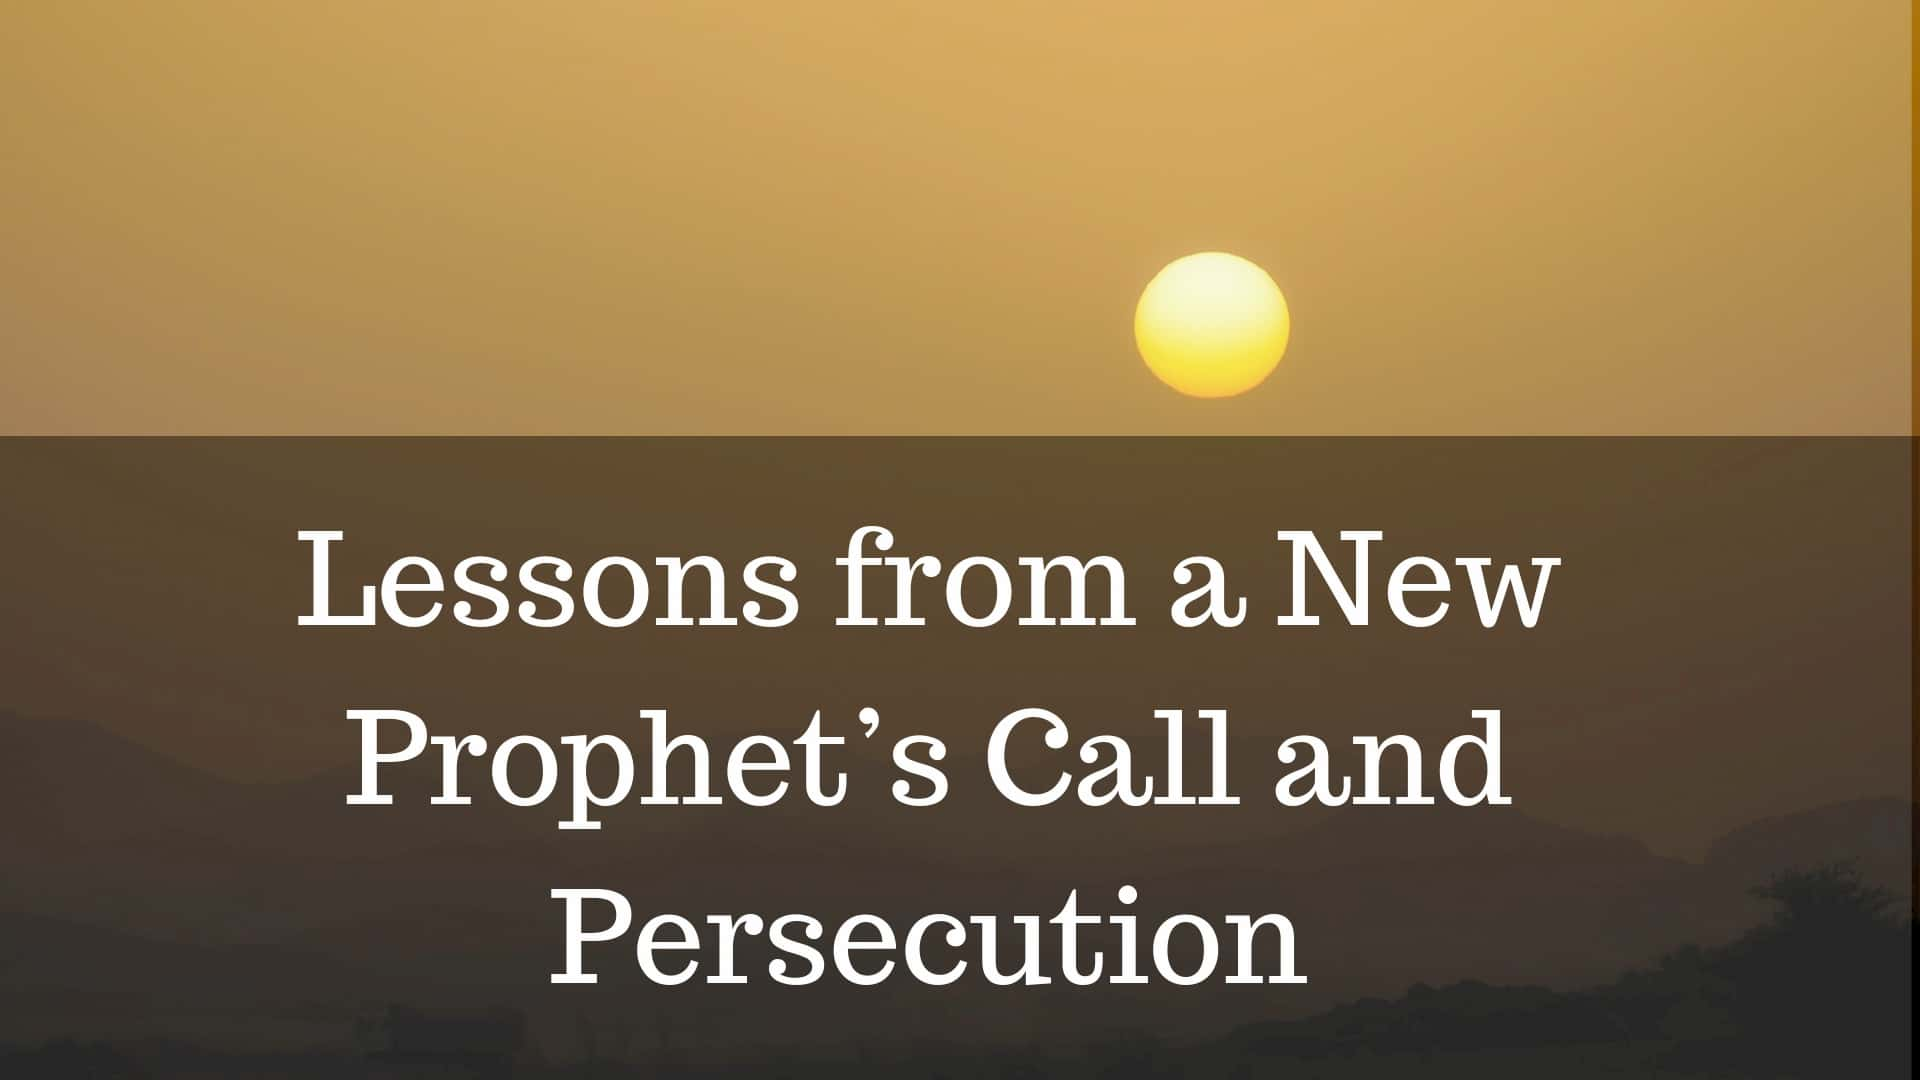 Lessons from a New Prophet's Call and Persecution